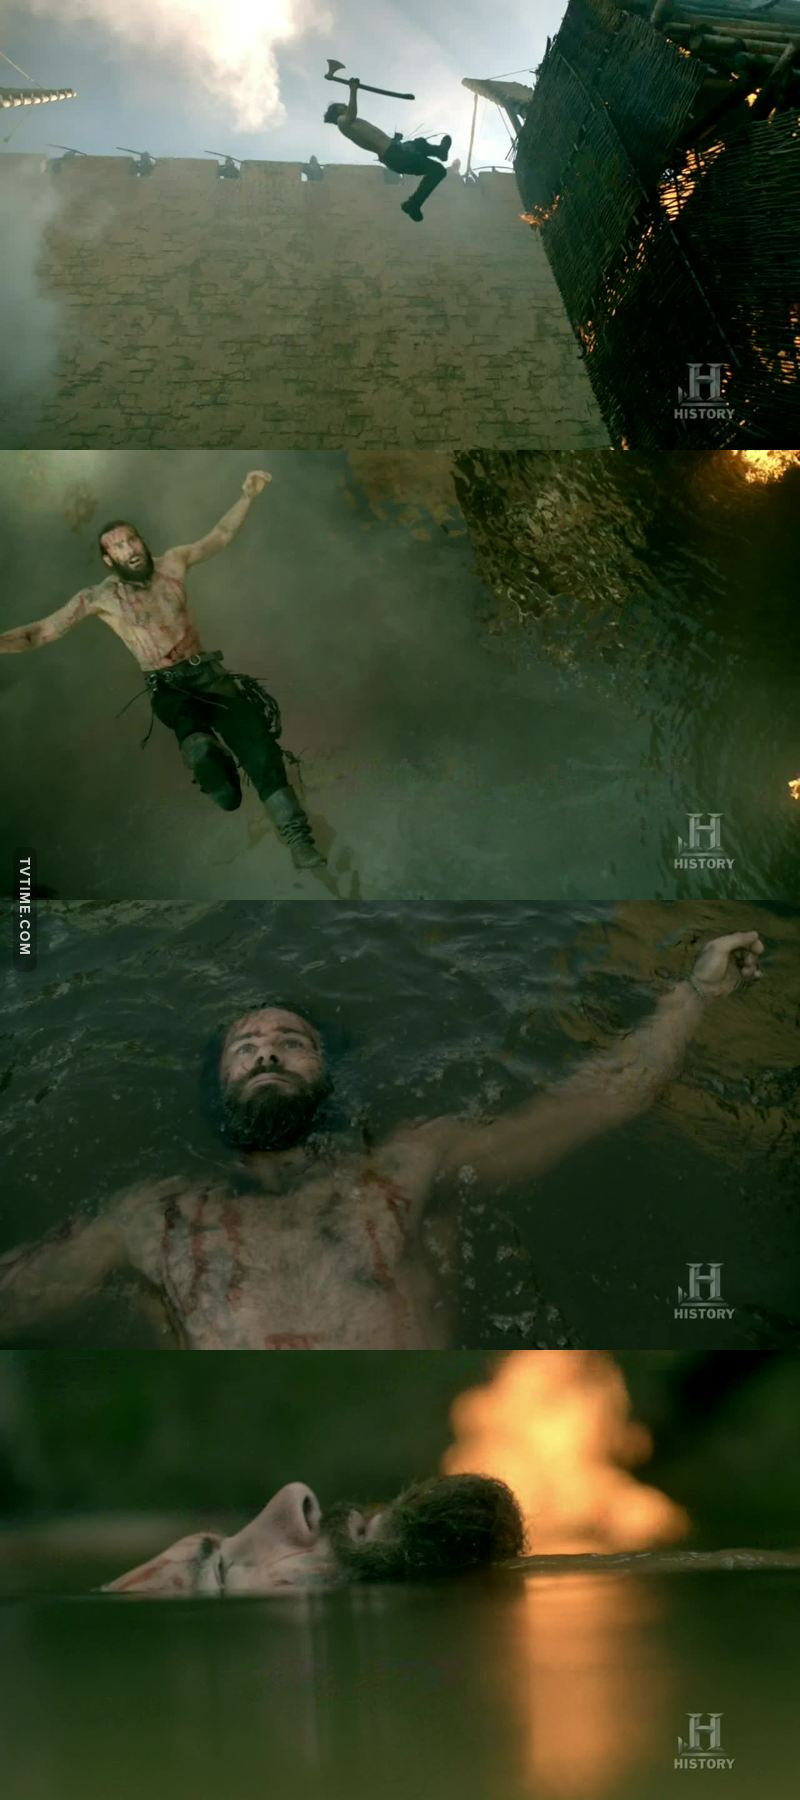 I thought he was dead💔 BUT HE SURVIVED!!! ROLLO IS A FUCKING BEAST!! LOVE HIM!🙌🏻🙌🏻